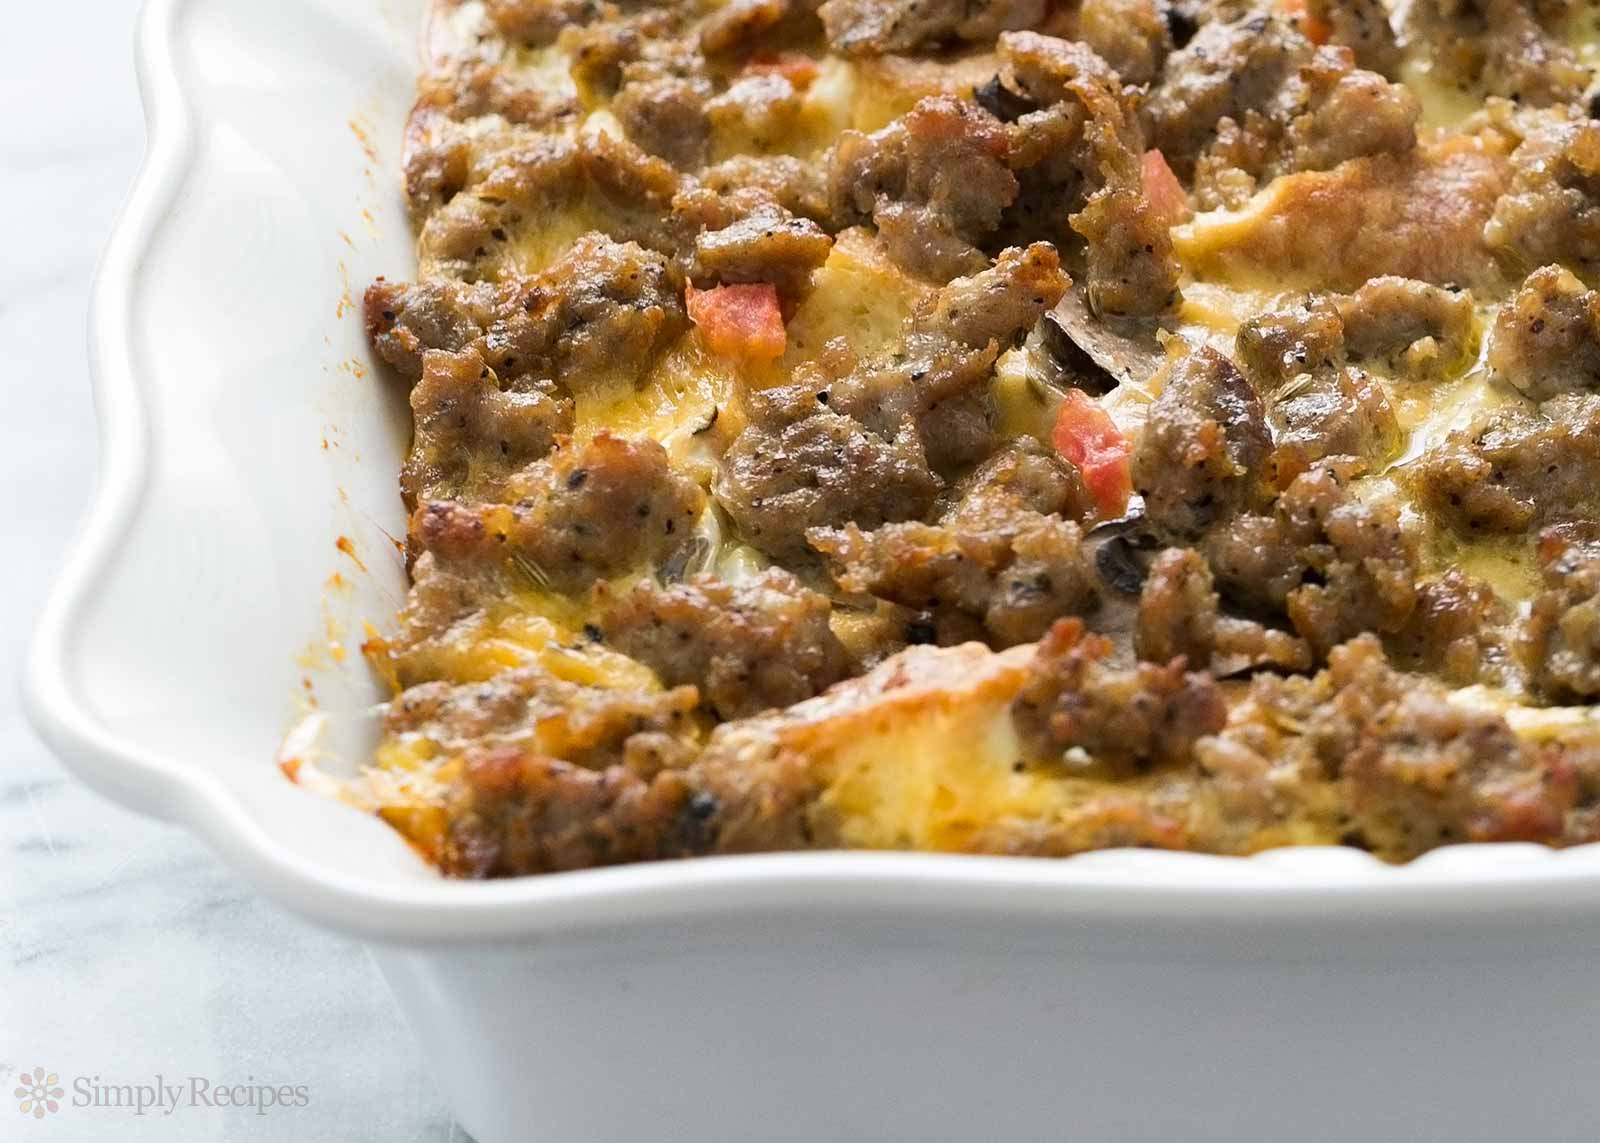 Breakfast Casserole Recipes With Sausage  Sausage Breakfast Casserole Recipe